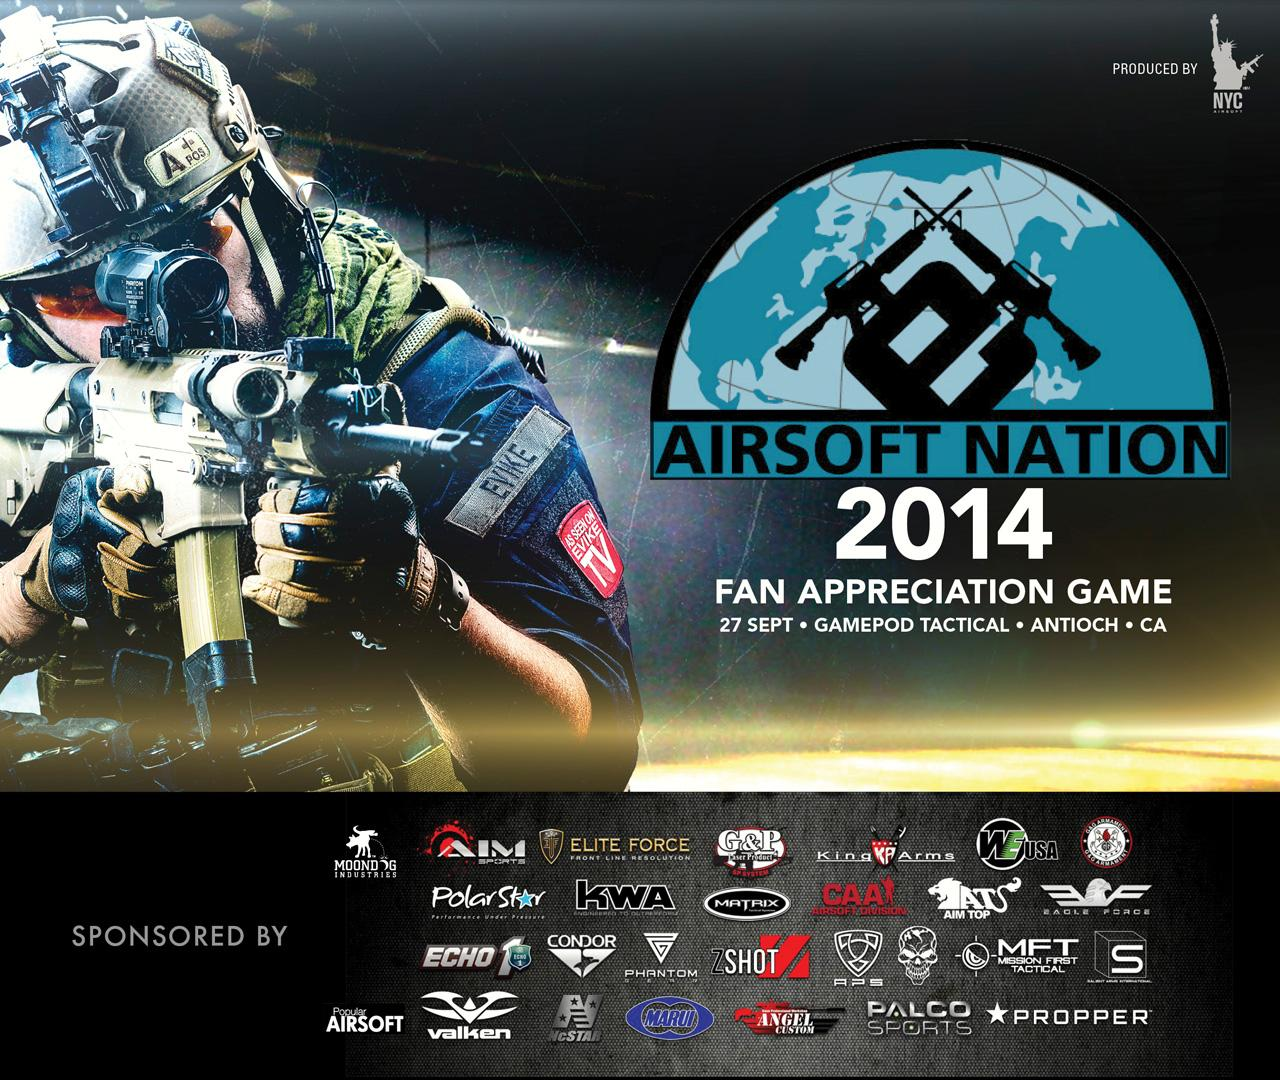 Operation Airsoft Nation Fan Appreciation Game (Sep. 27th, 2014. Antioch, California) - Bravo